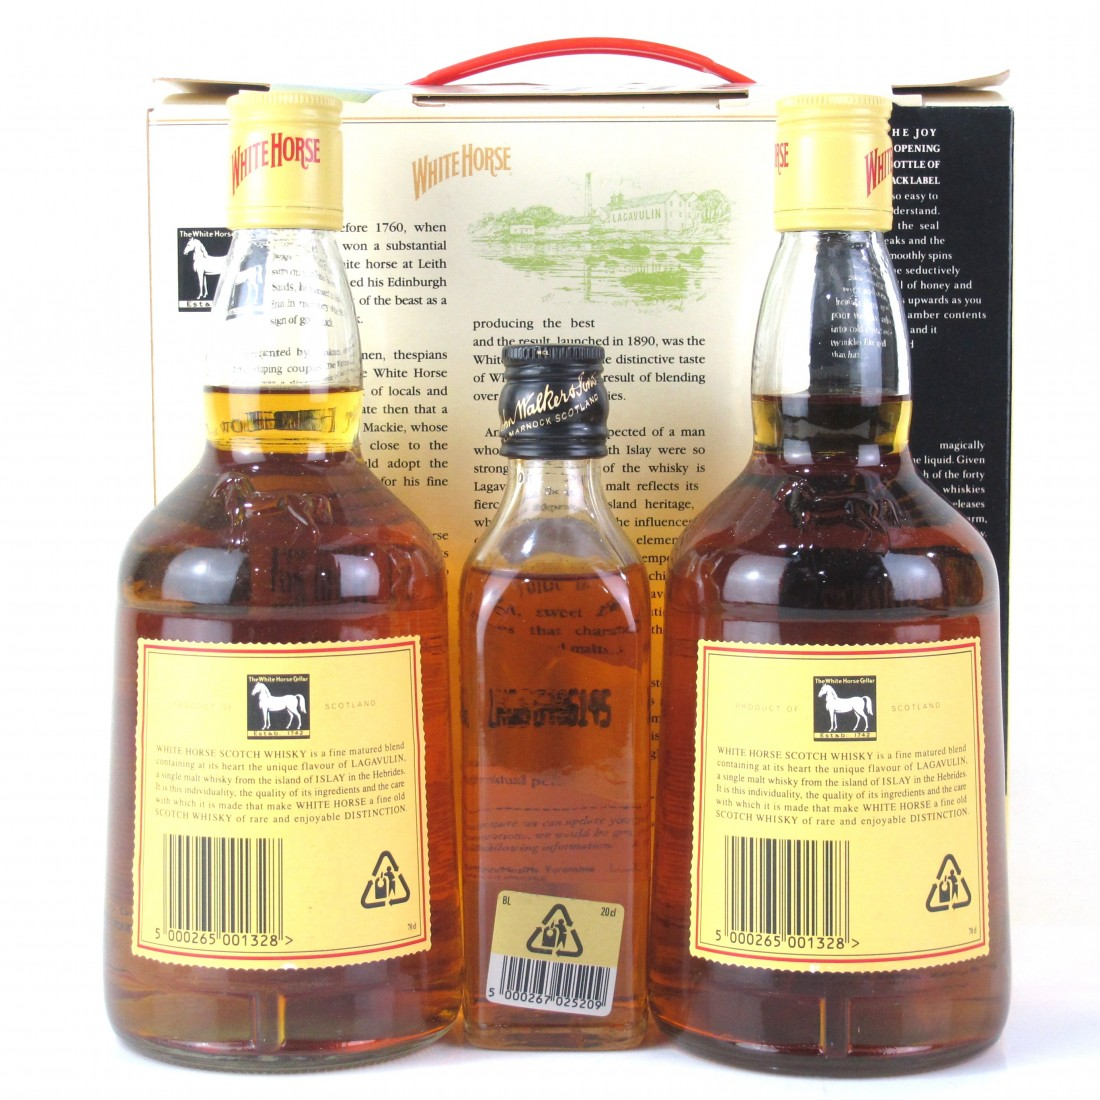 White Horse Scotch Whisky 2 x 70cl / includes Johnnie Walker Black Label 20cl